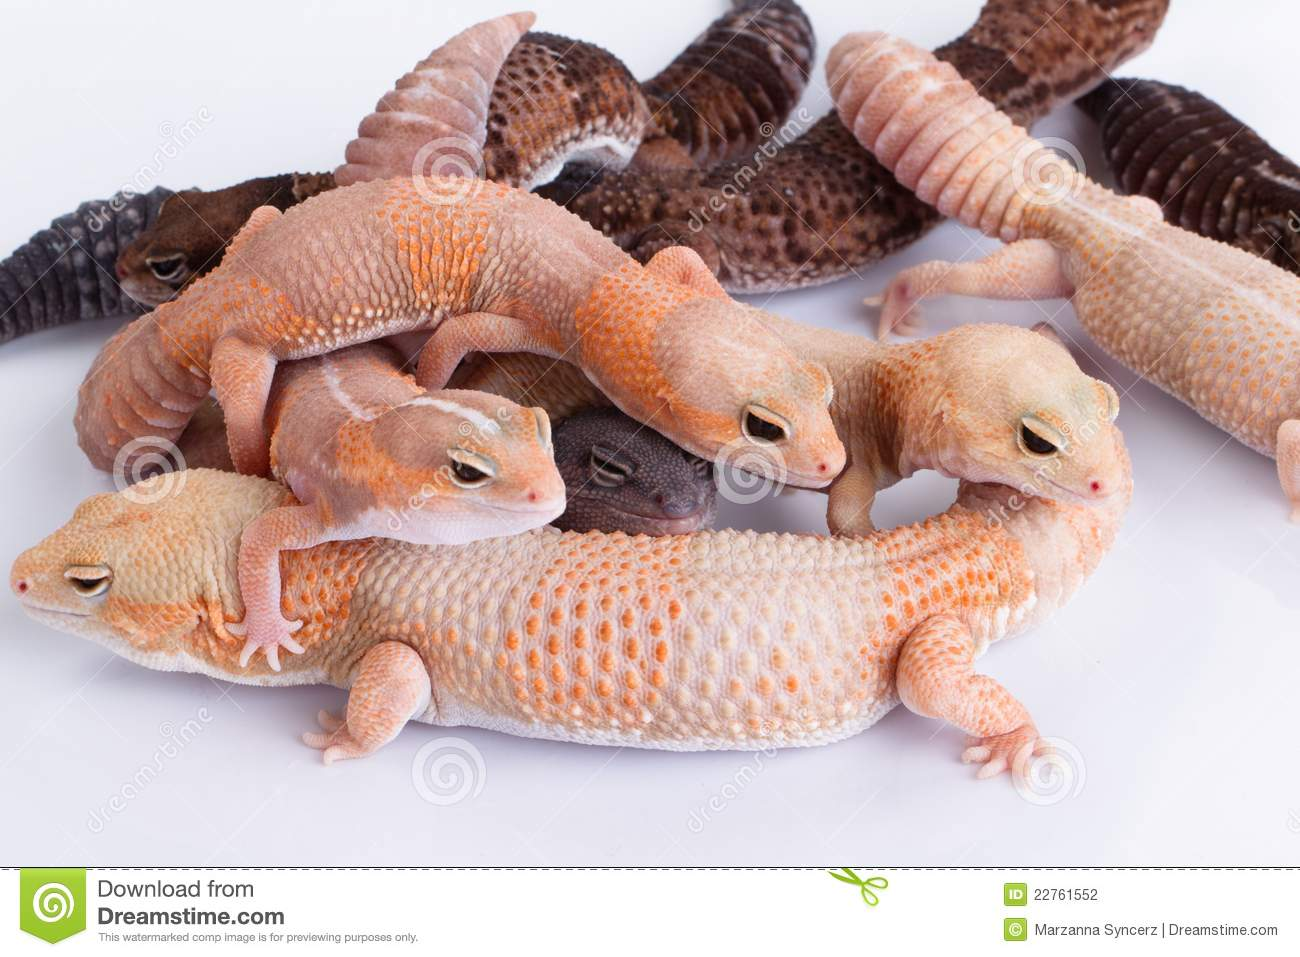 Grupo de geckos Fat-tailed